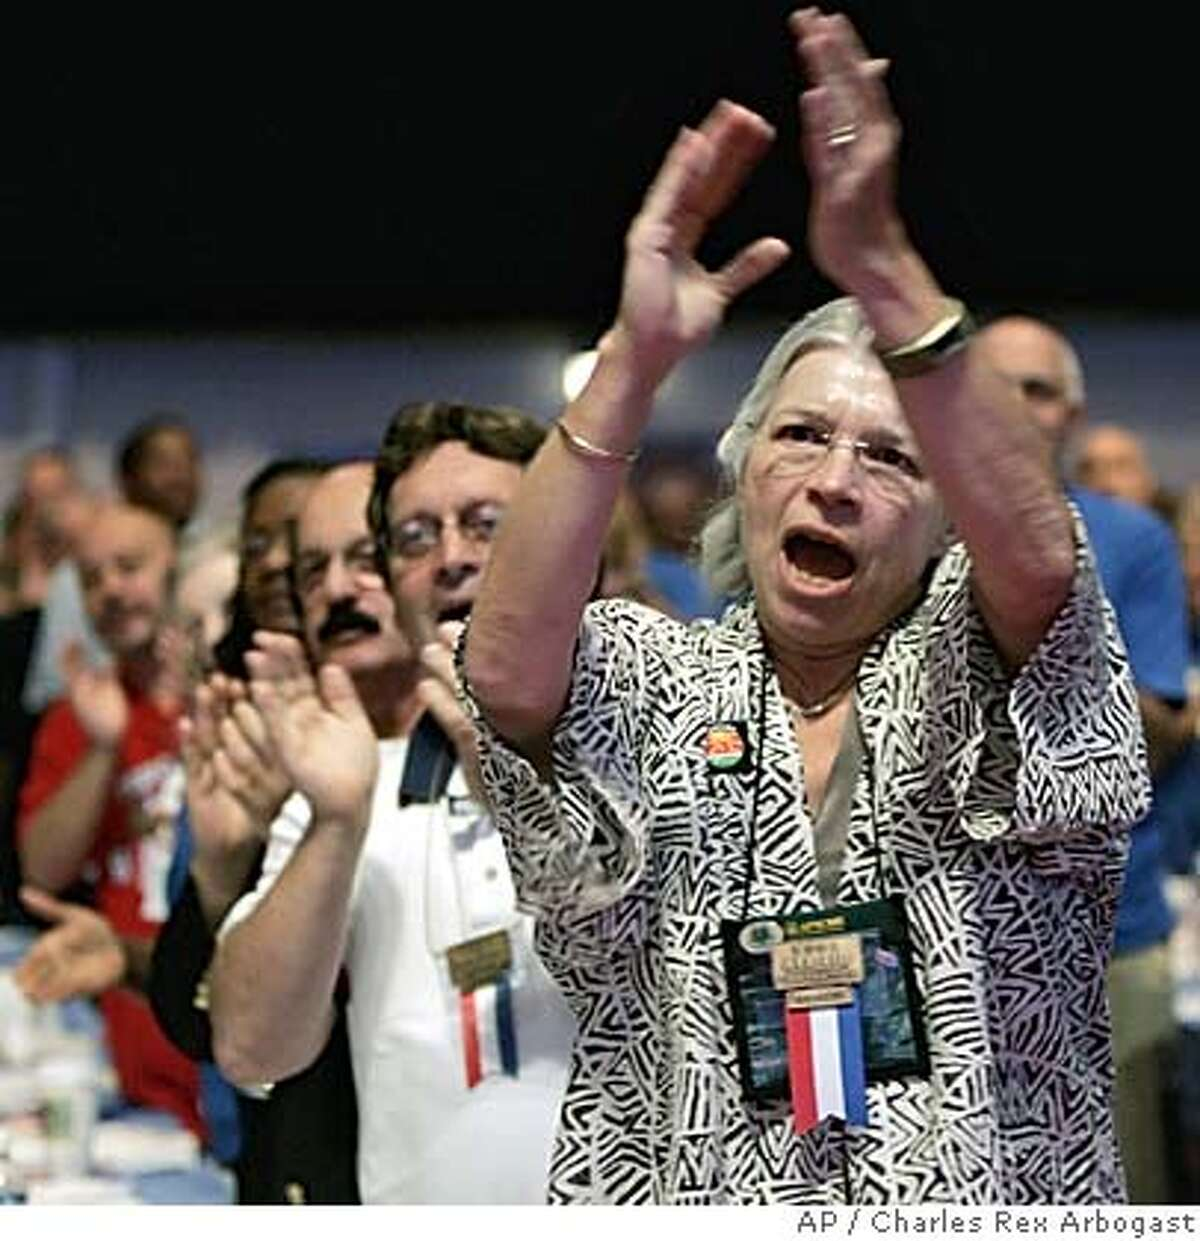 Patricia Moss, from Columbus, Ohio, a member of the ASFCME local in Columbus and a delegate to the AFL-CIO's national convention, applauds remarks made by the Rev. Jesse Jackson at Chicago's Navy Pier Tuesday, July 26, 2005. (AP Photo/Charles Rex Arbogast)